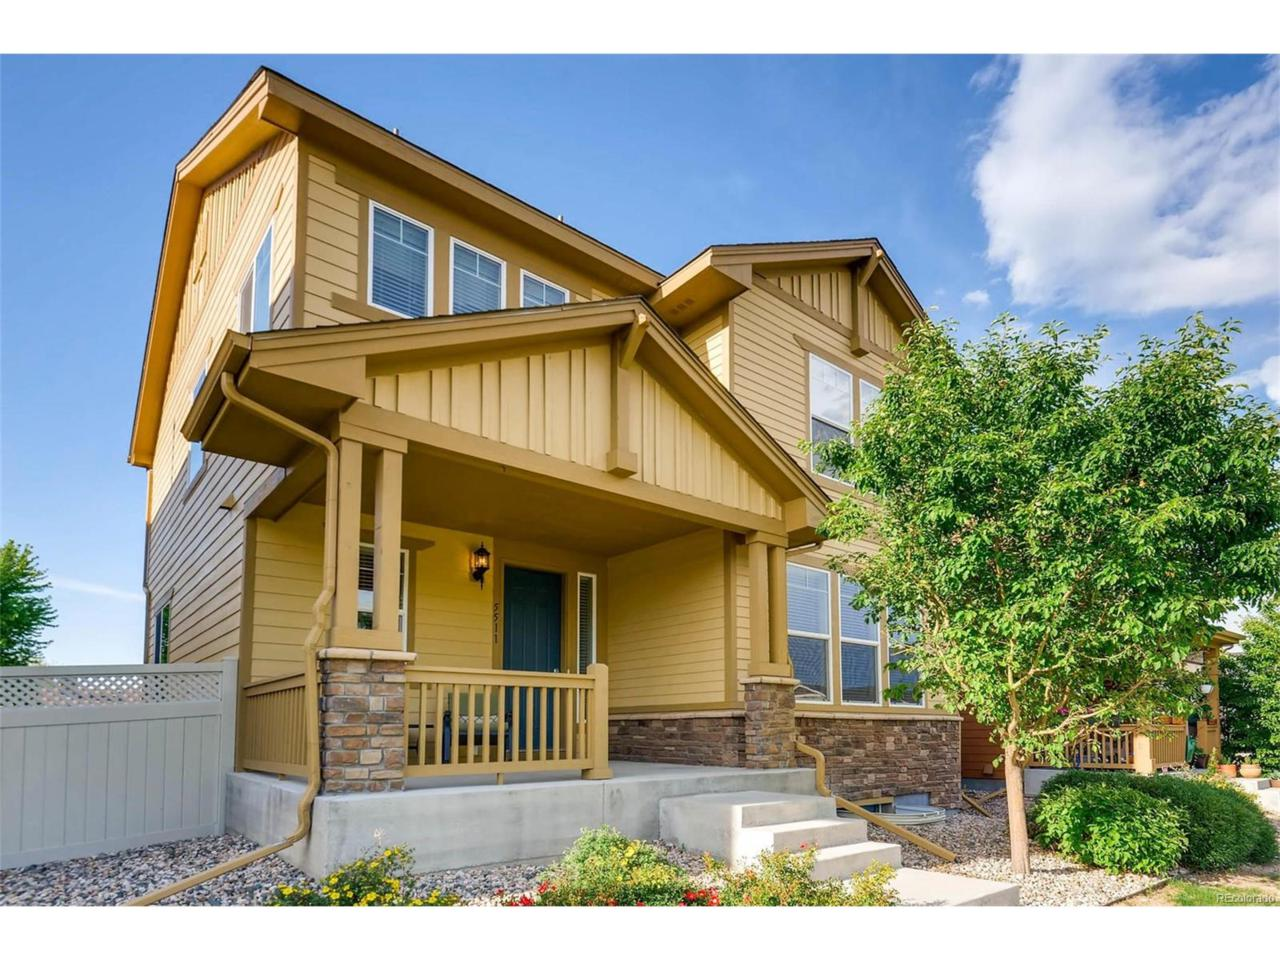 5511 W 73rd Place, Westminster, CO 80003 (MLS #4248403) :: 8z Real Estate